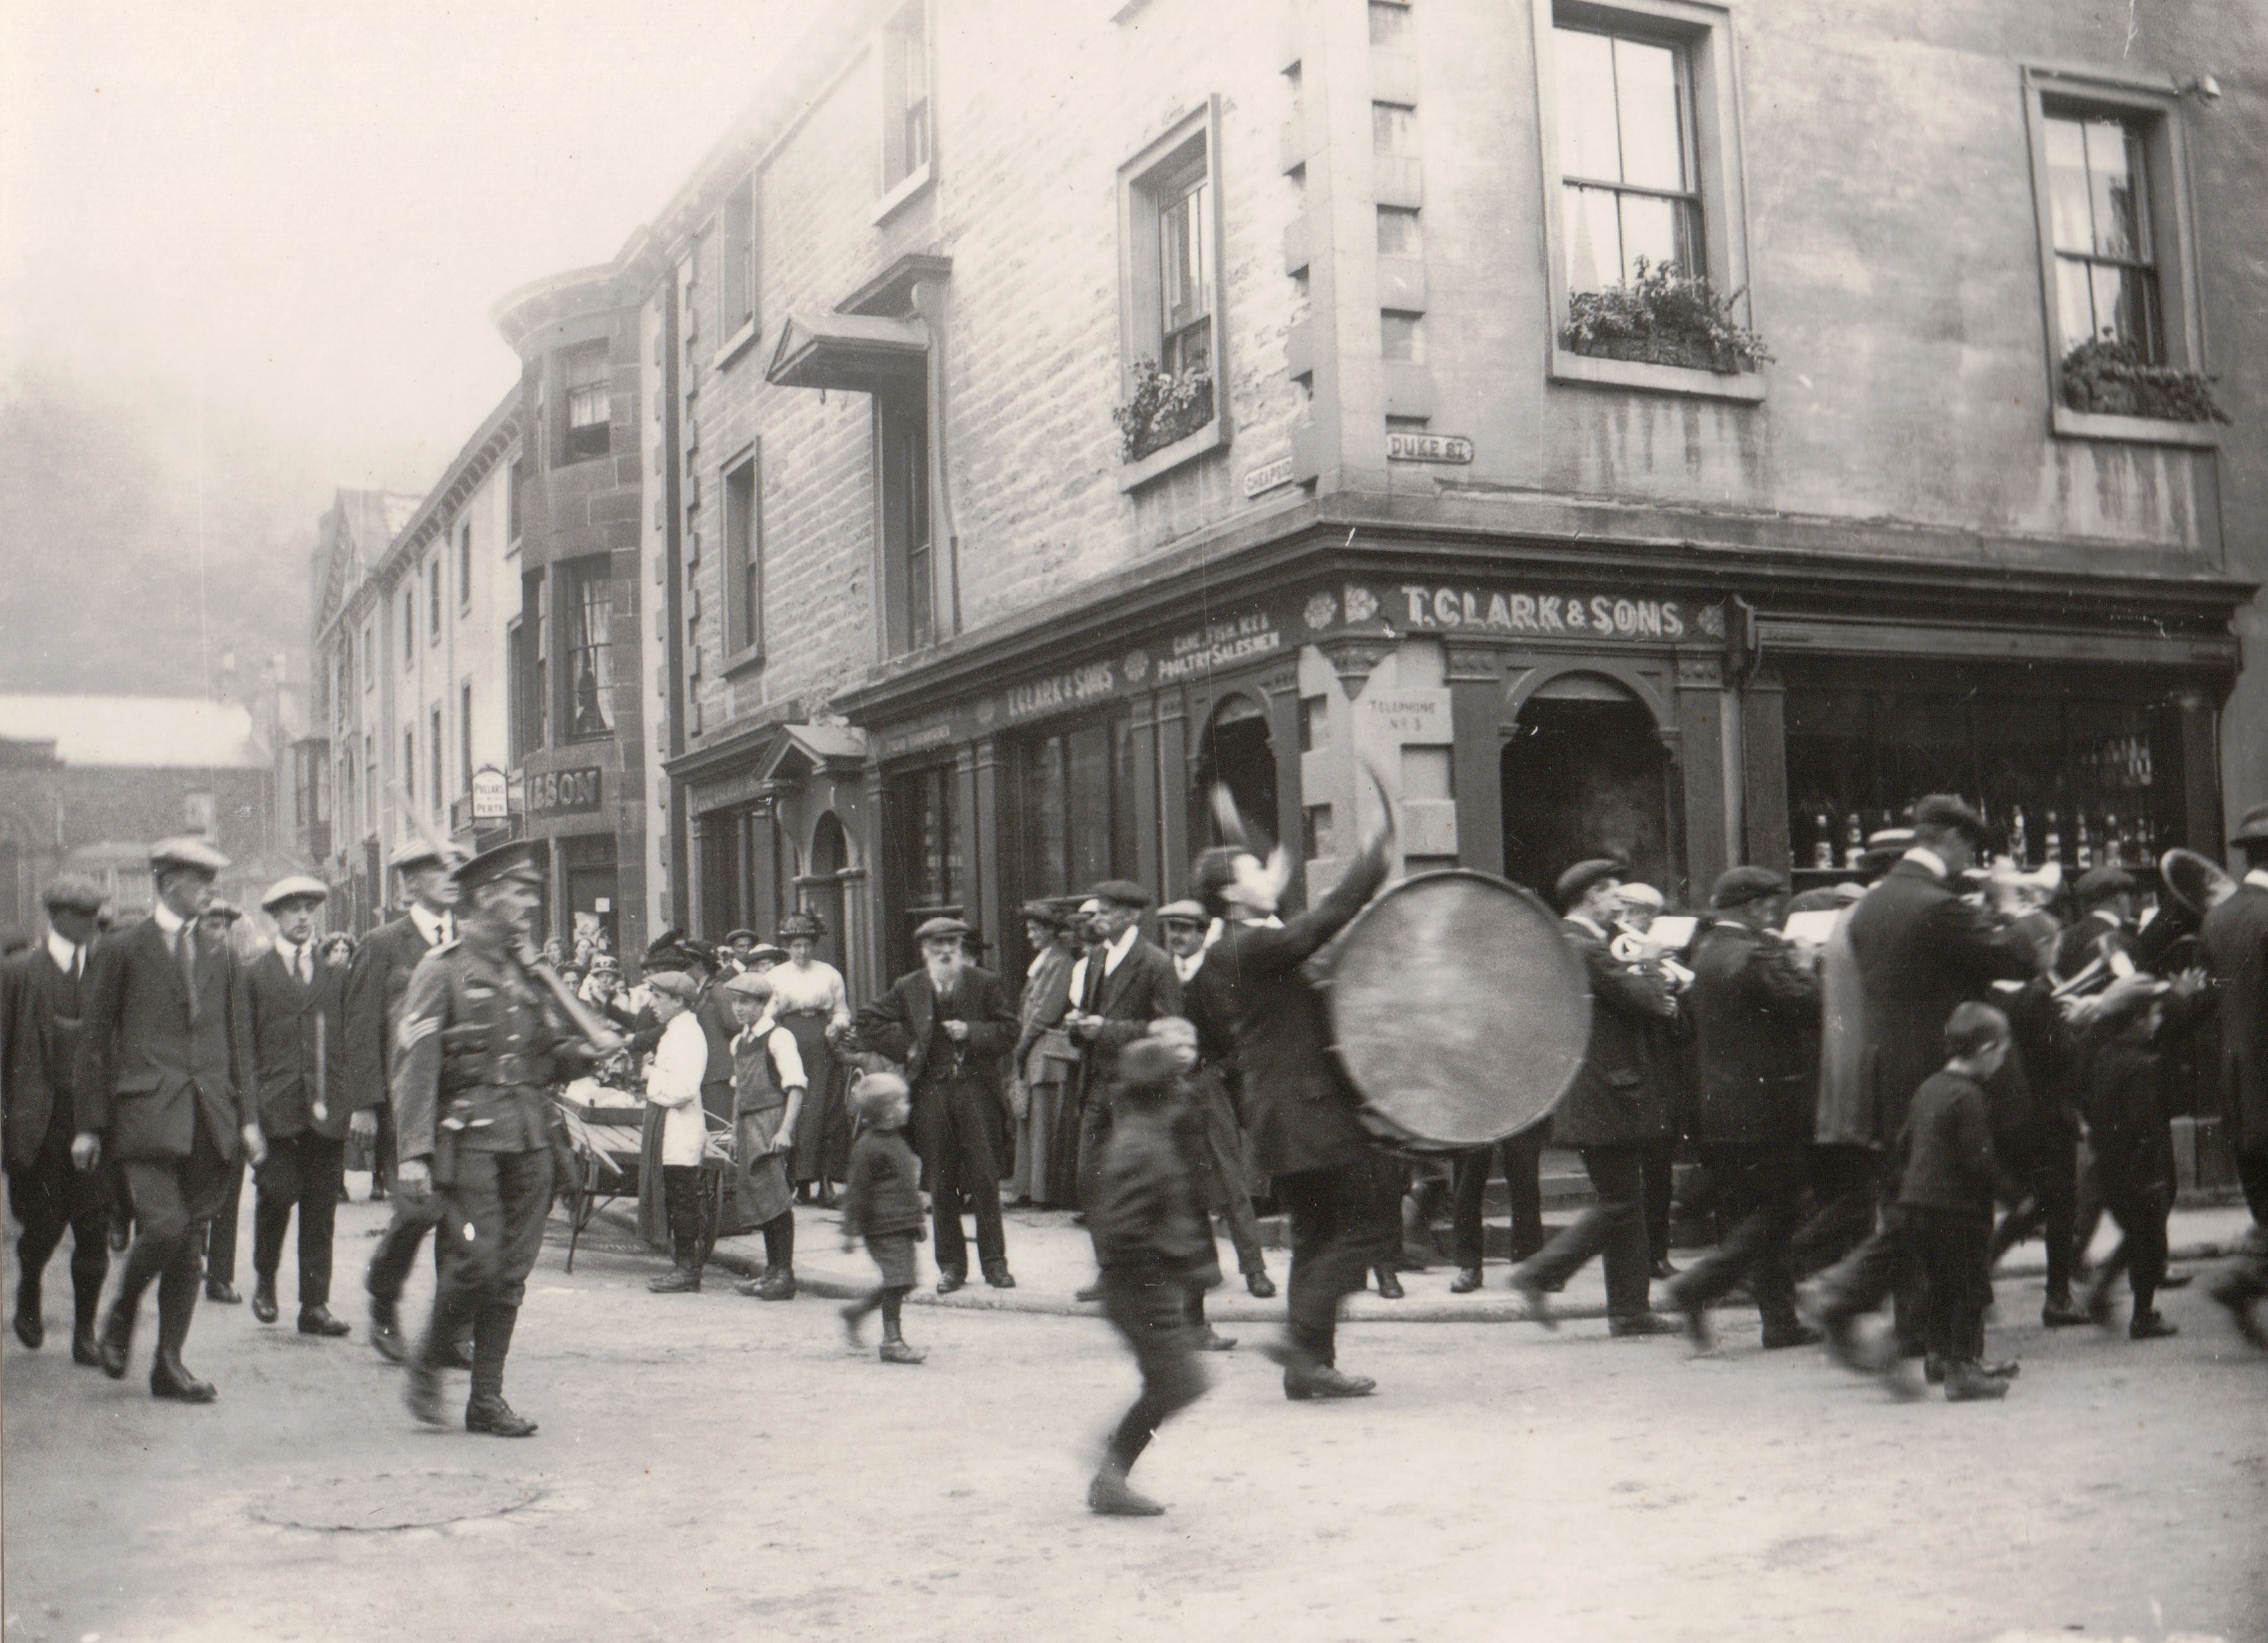 Soldiers leave for war in Settle